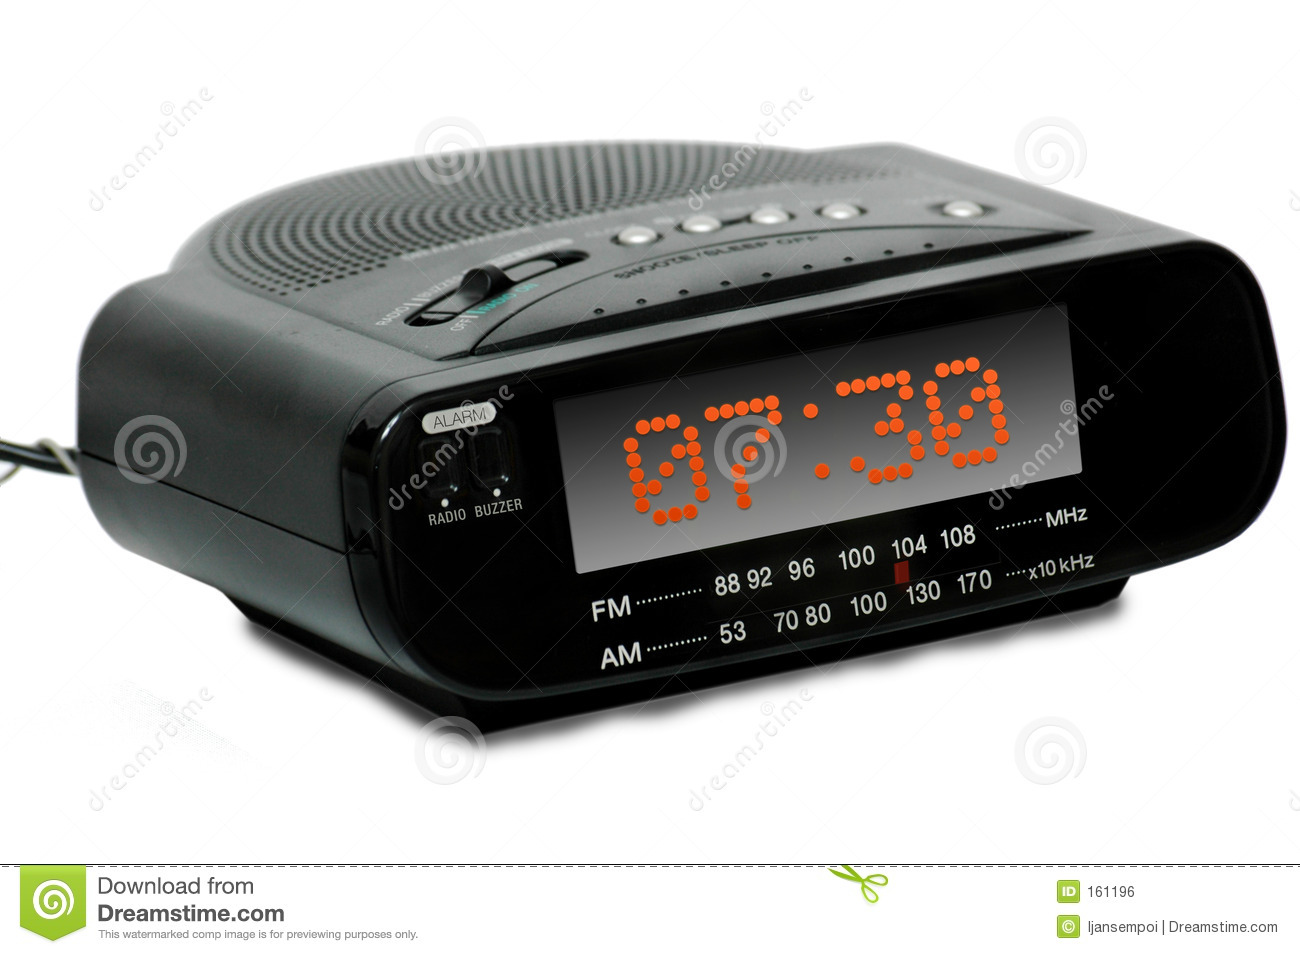 digital alarm radio clock royalty free stock image image. Black Bedroom Furniture Sets. Home Design Ideas